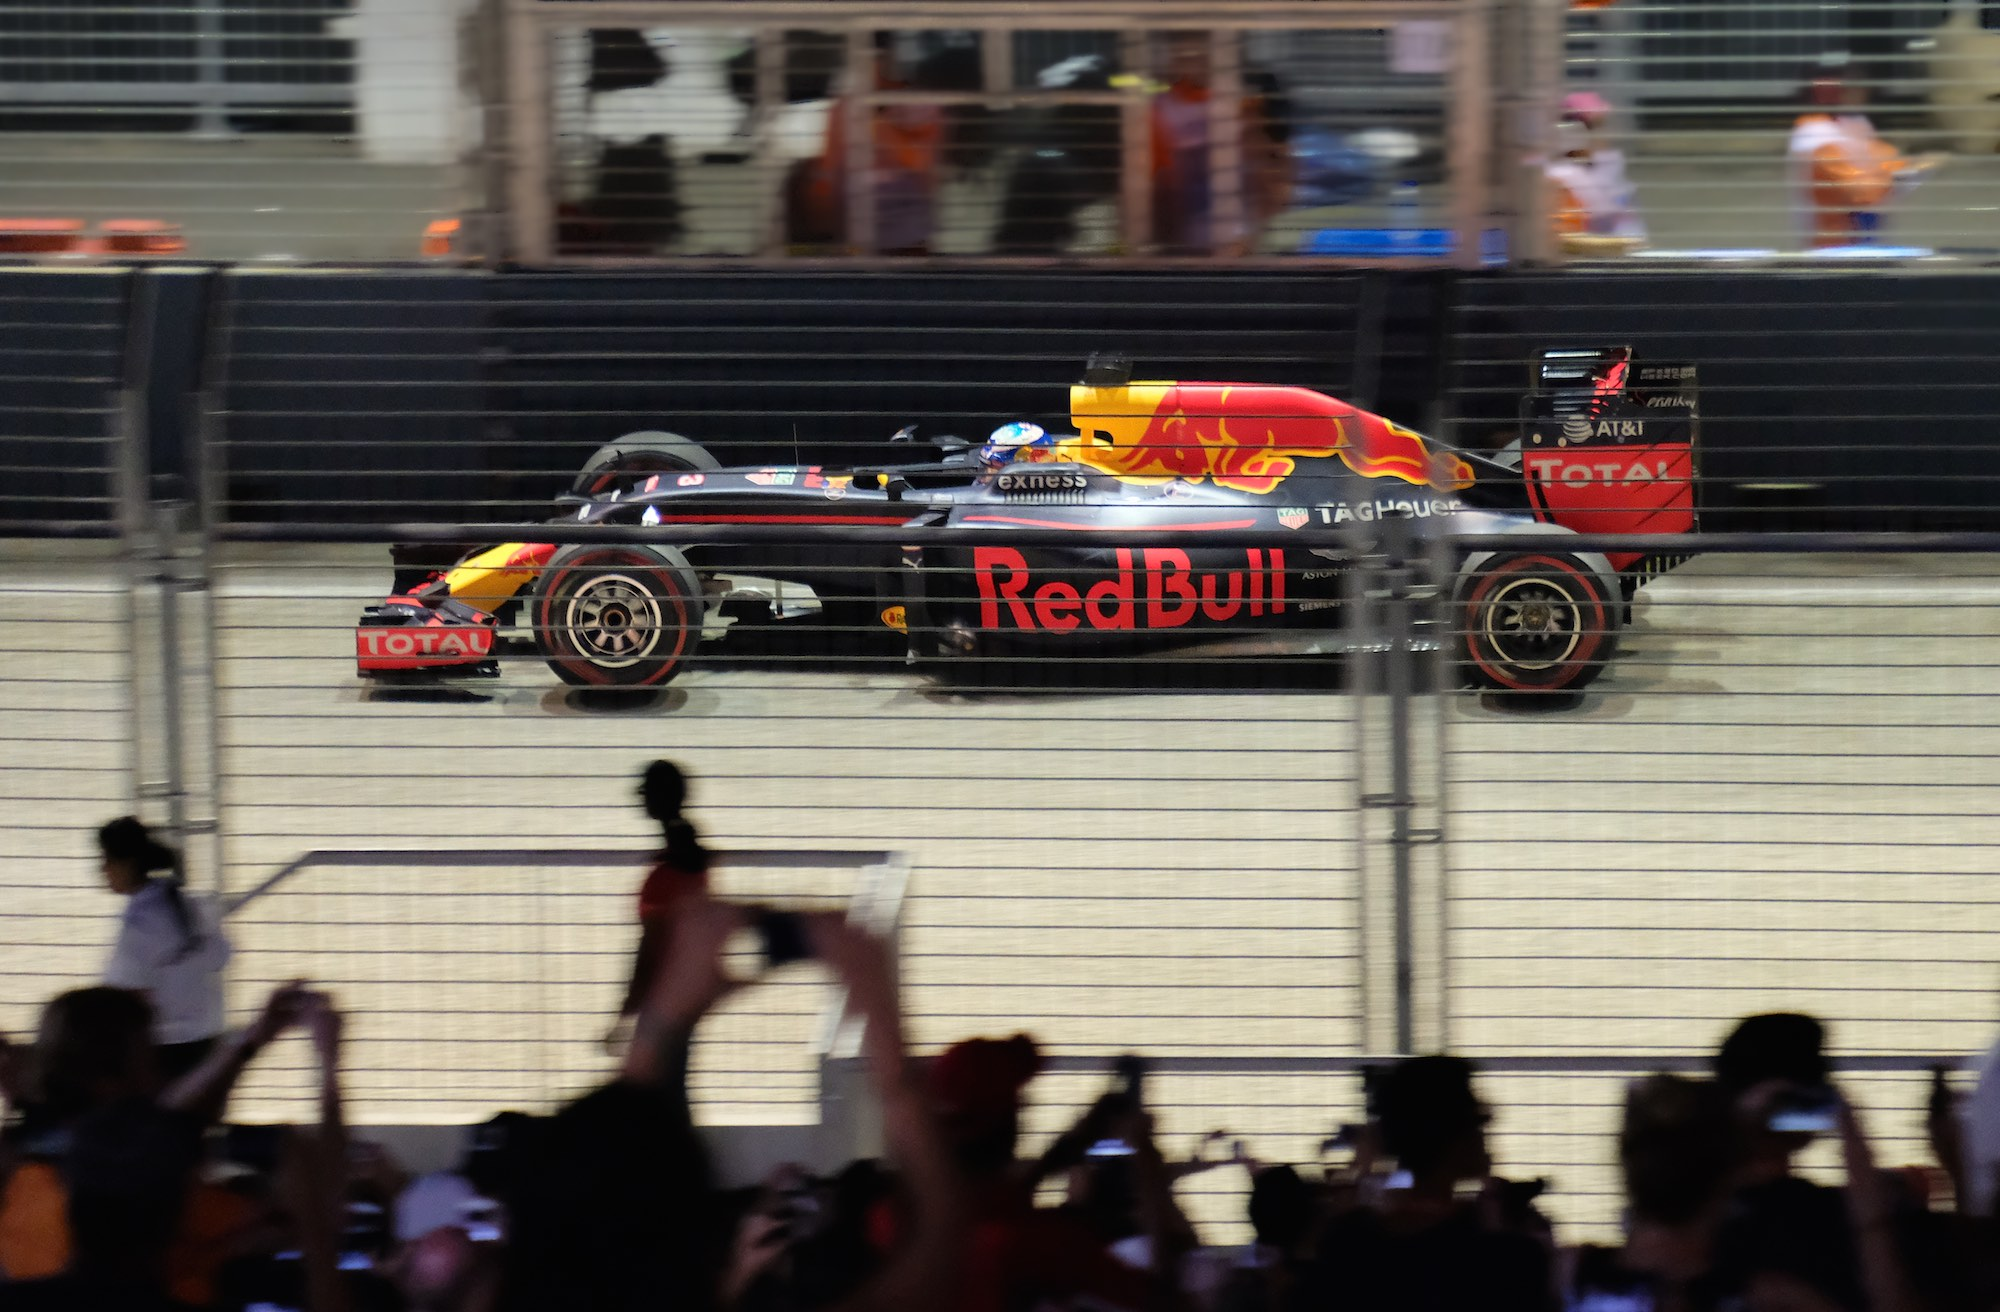 red bull car F1 formula one events photographer Singapore photography sg